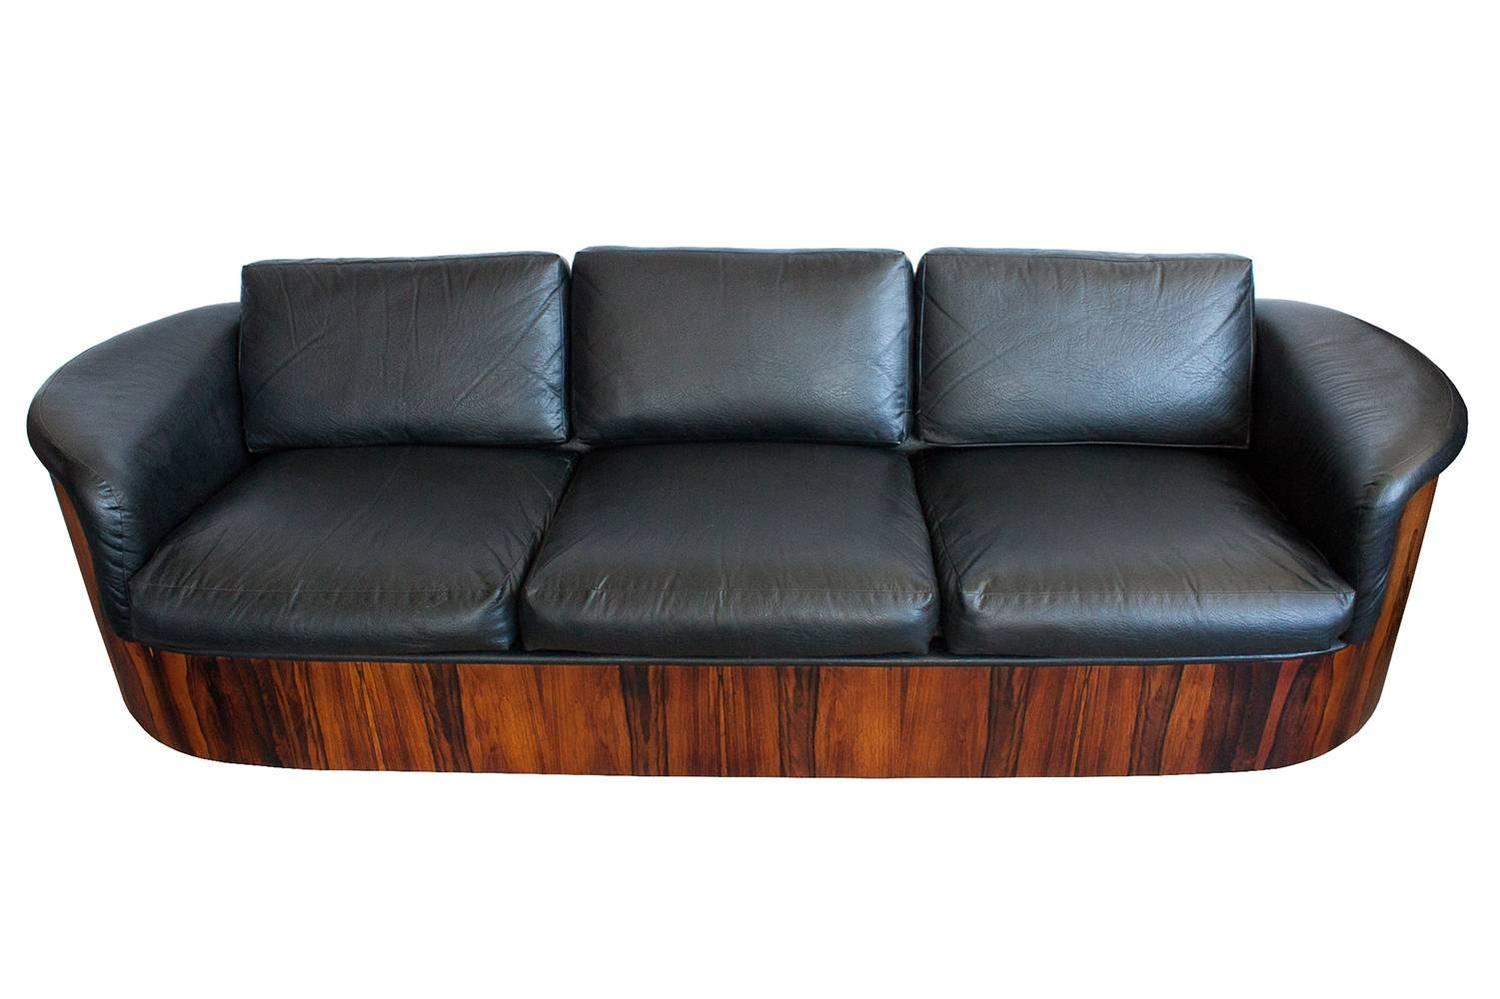 Rare Rosewood Case Sofa By Plycraft For Sale At 1stdibs